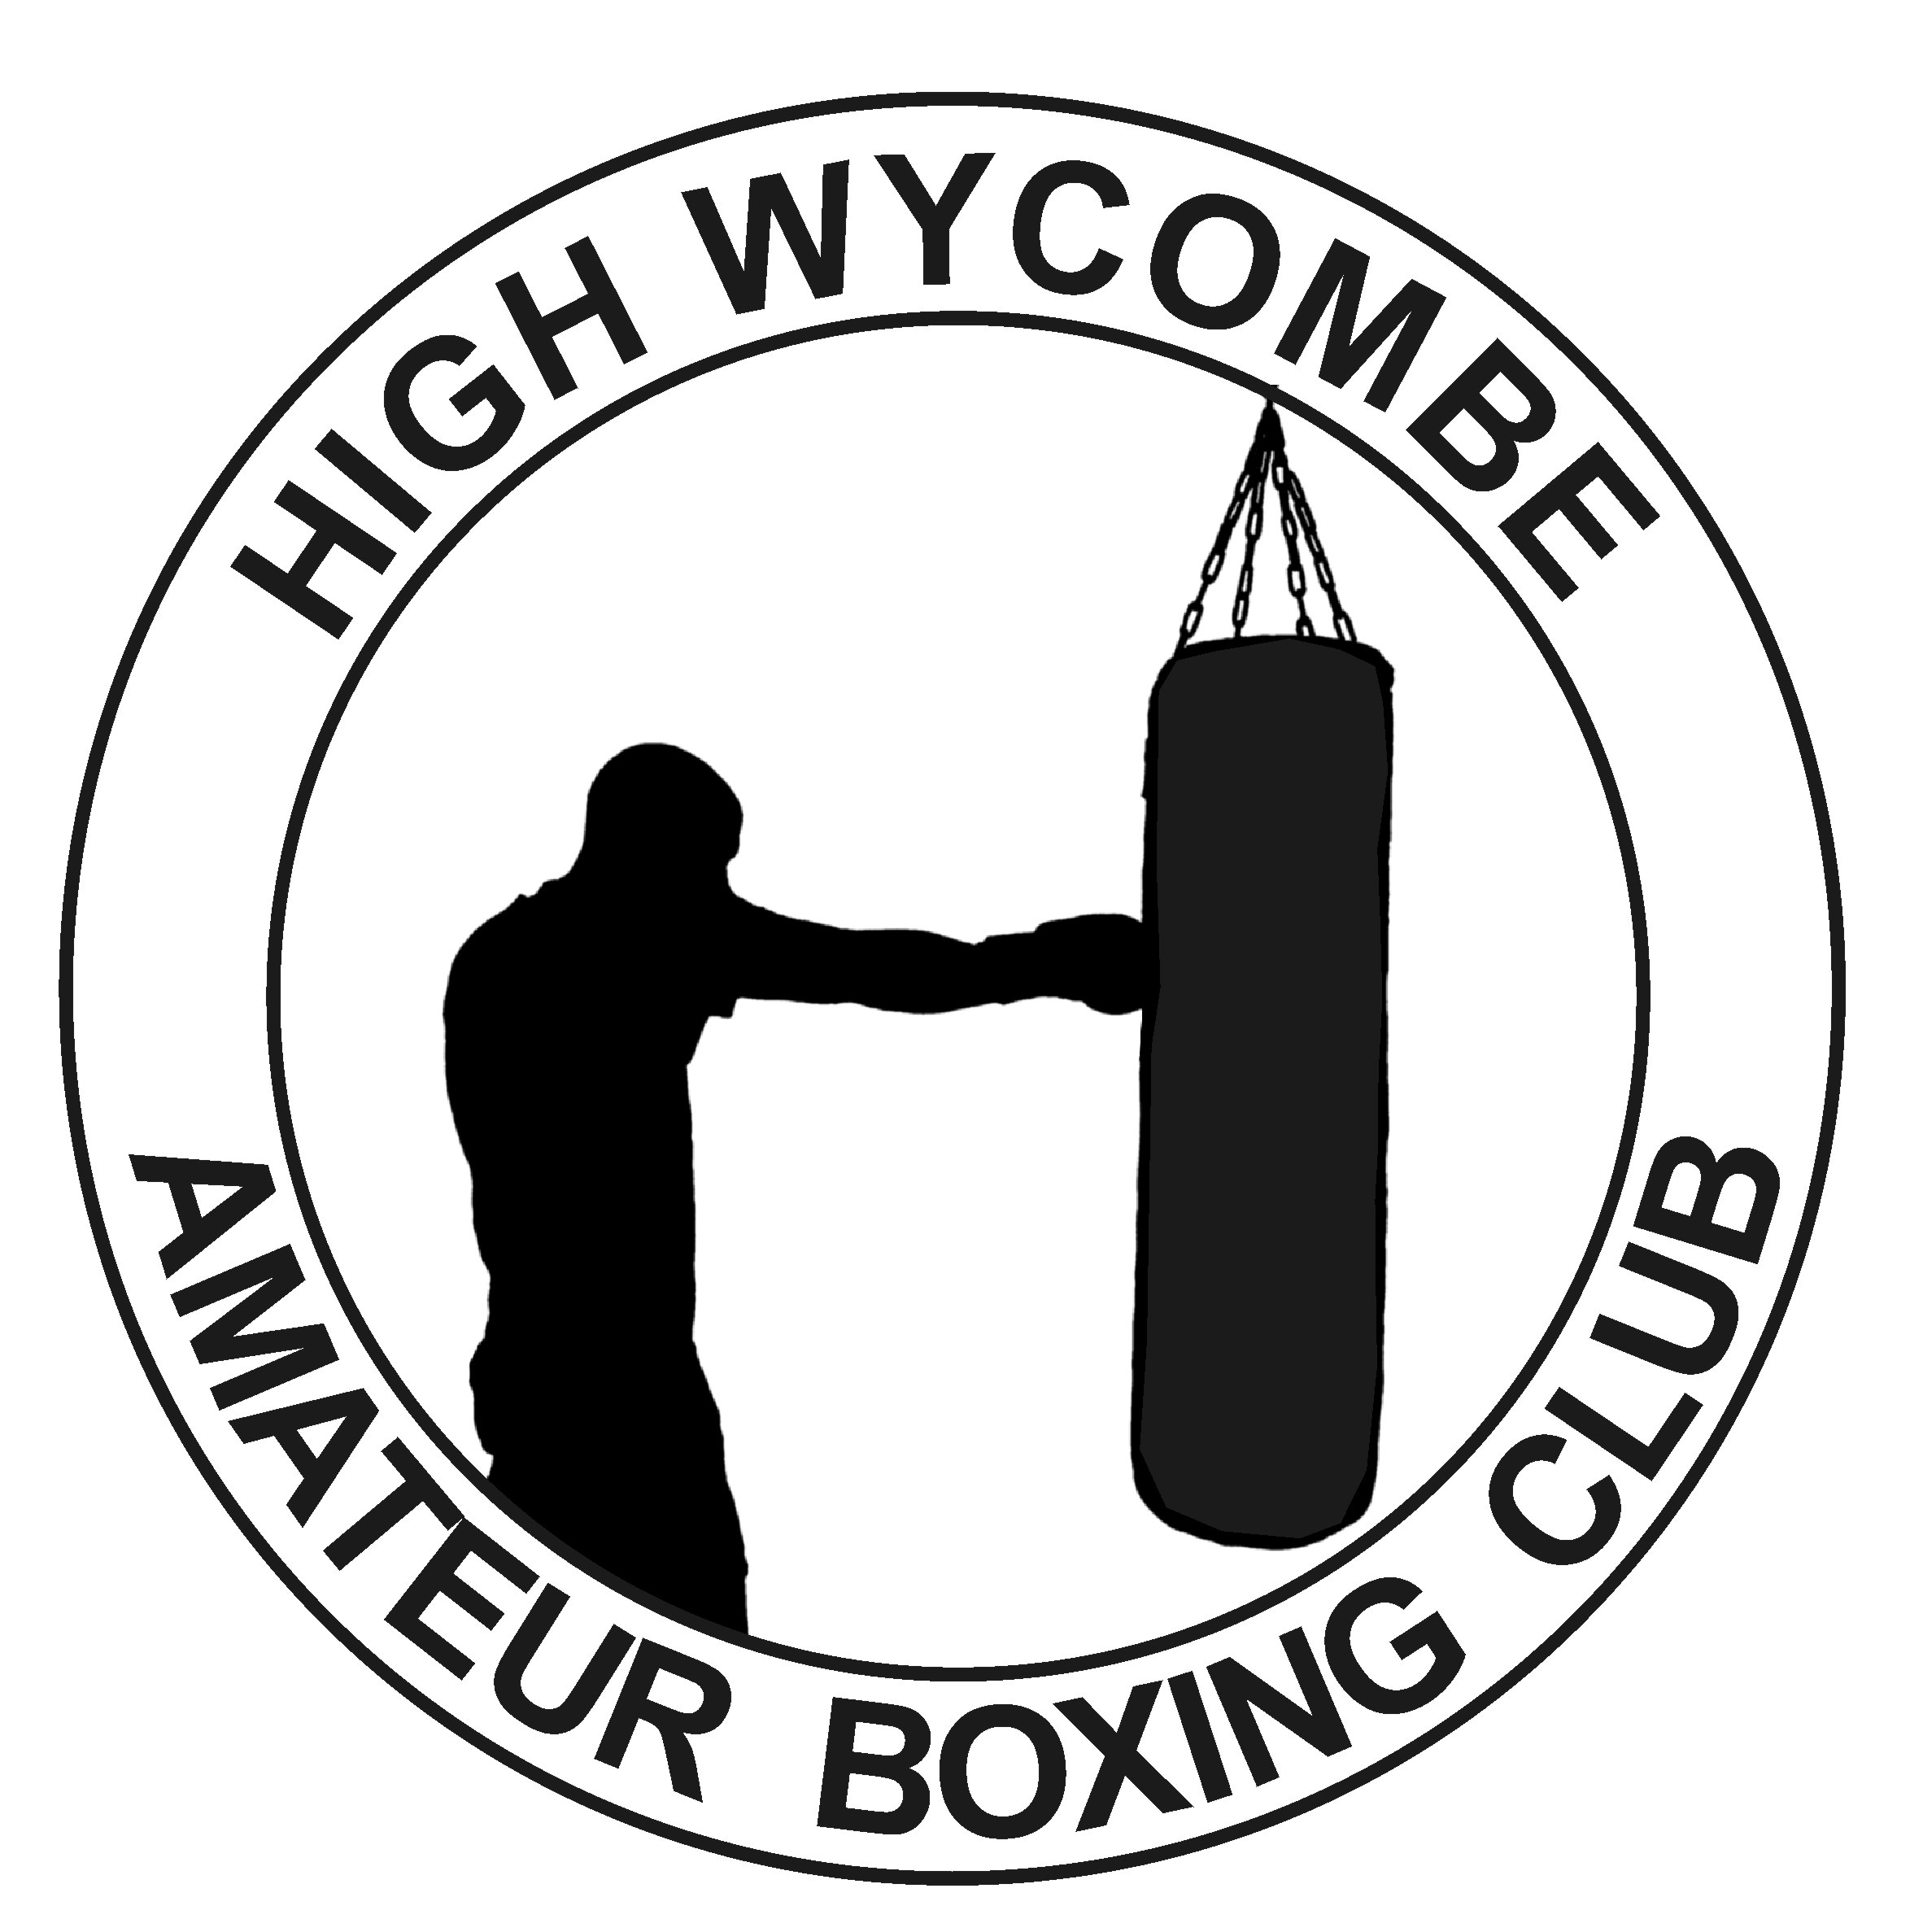 Ed Gamester Boxing In High Wycombe